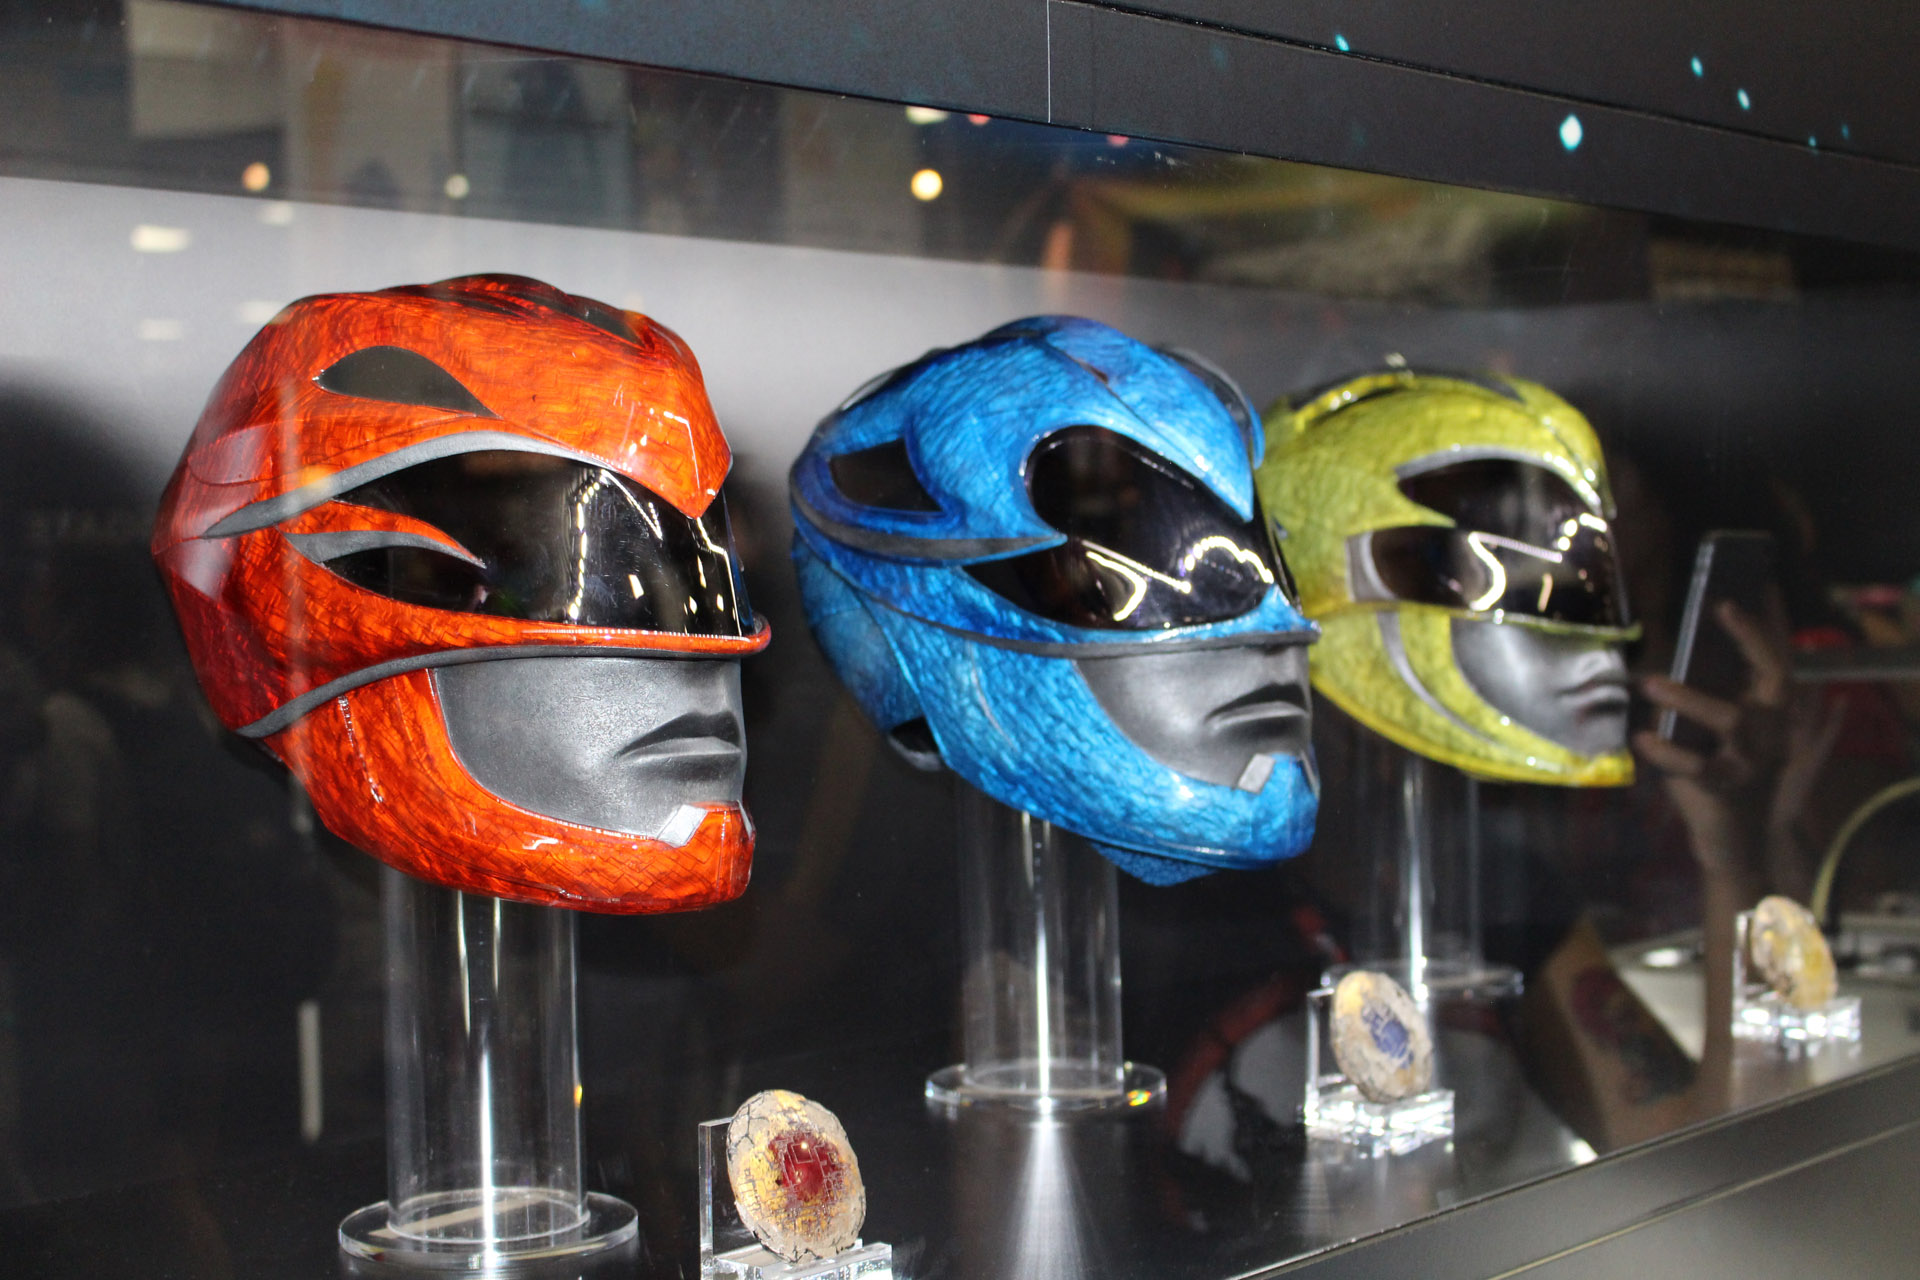 power rangers movie first look at new helmets amp power coins